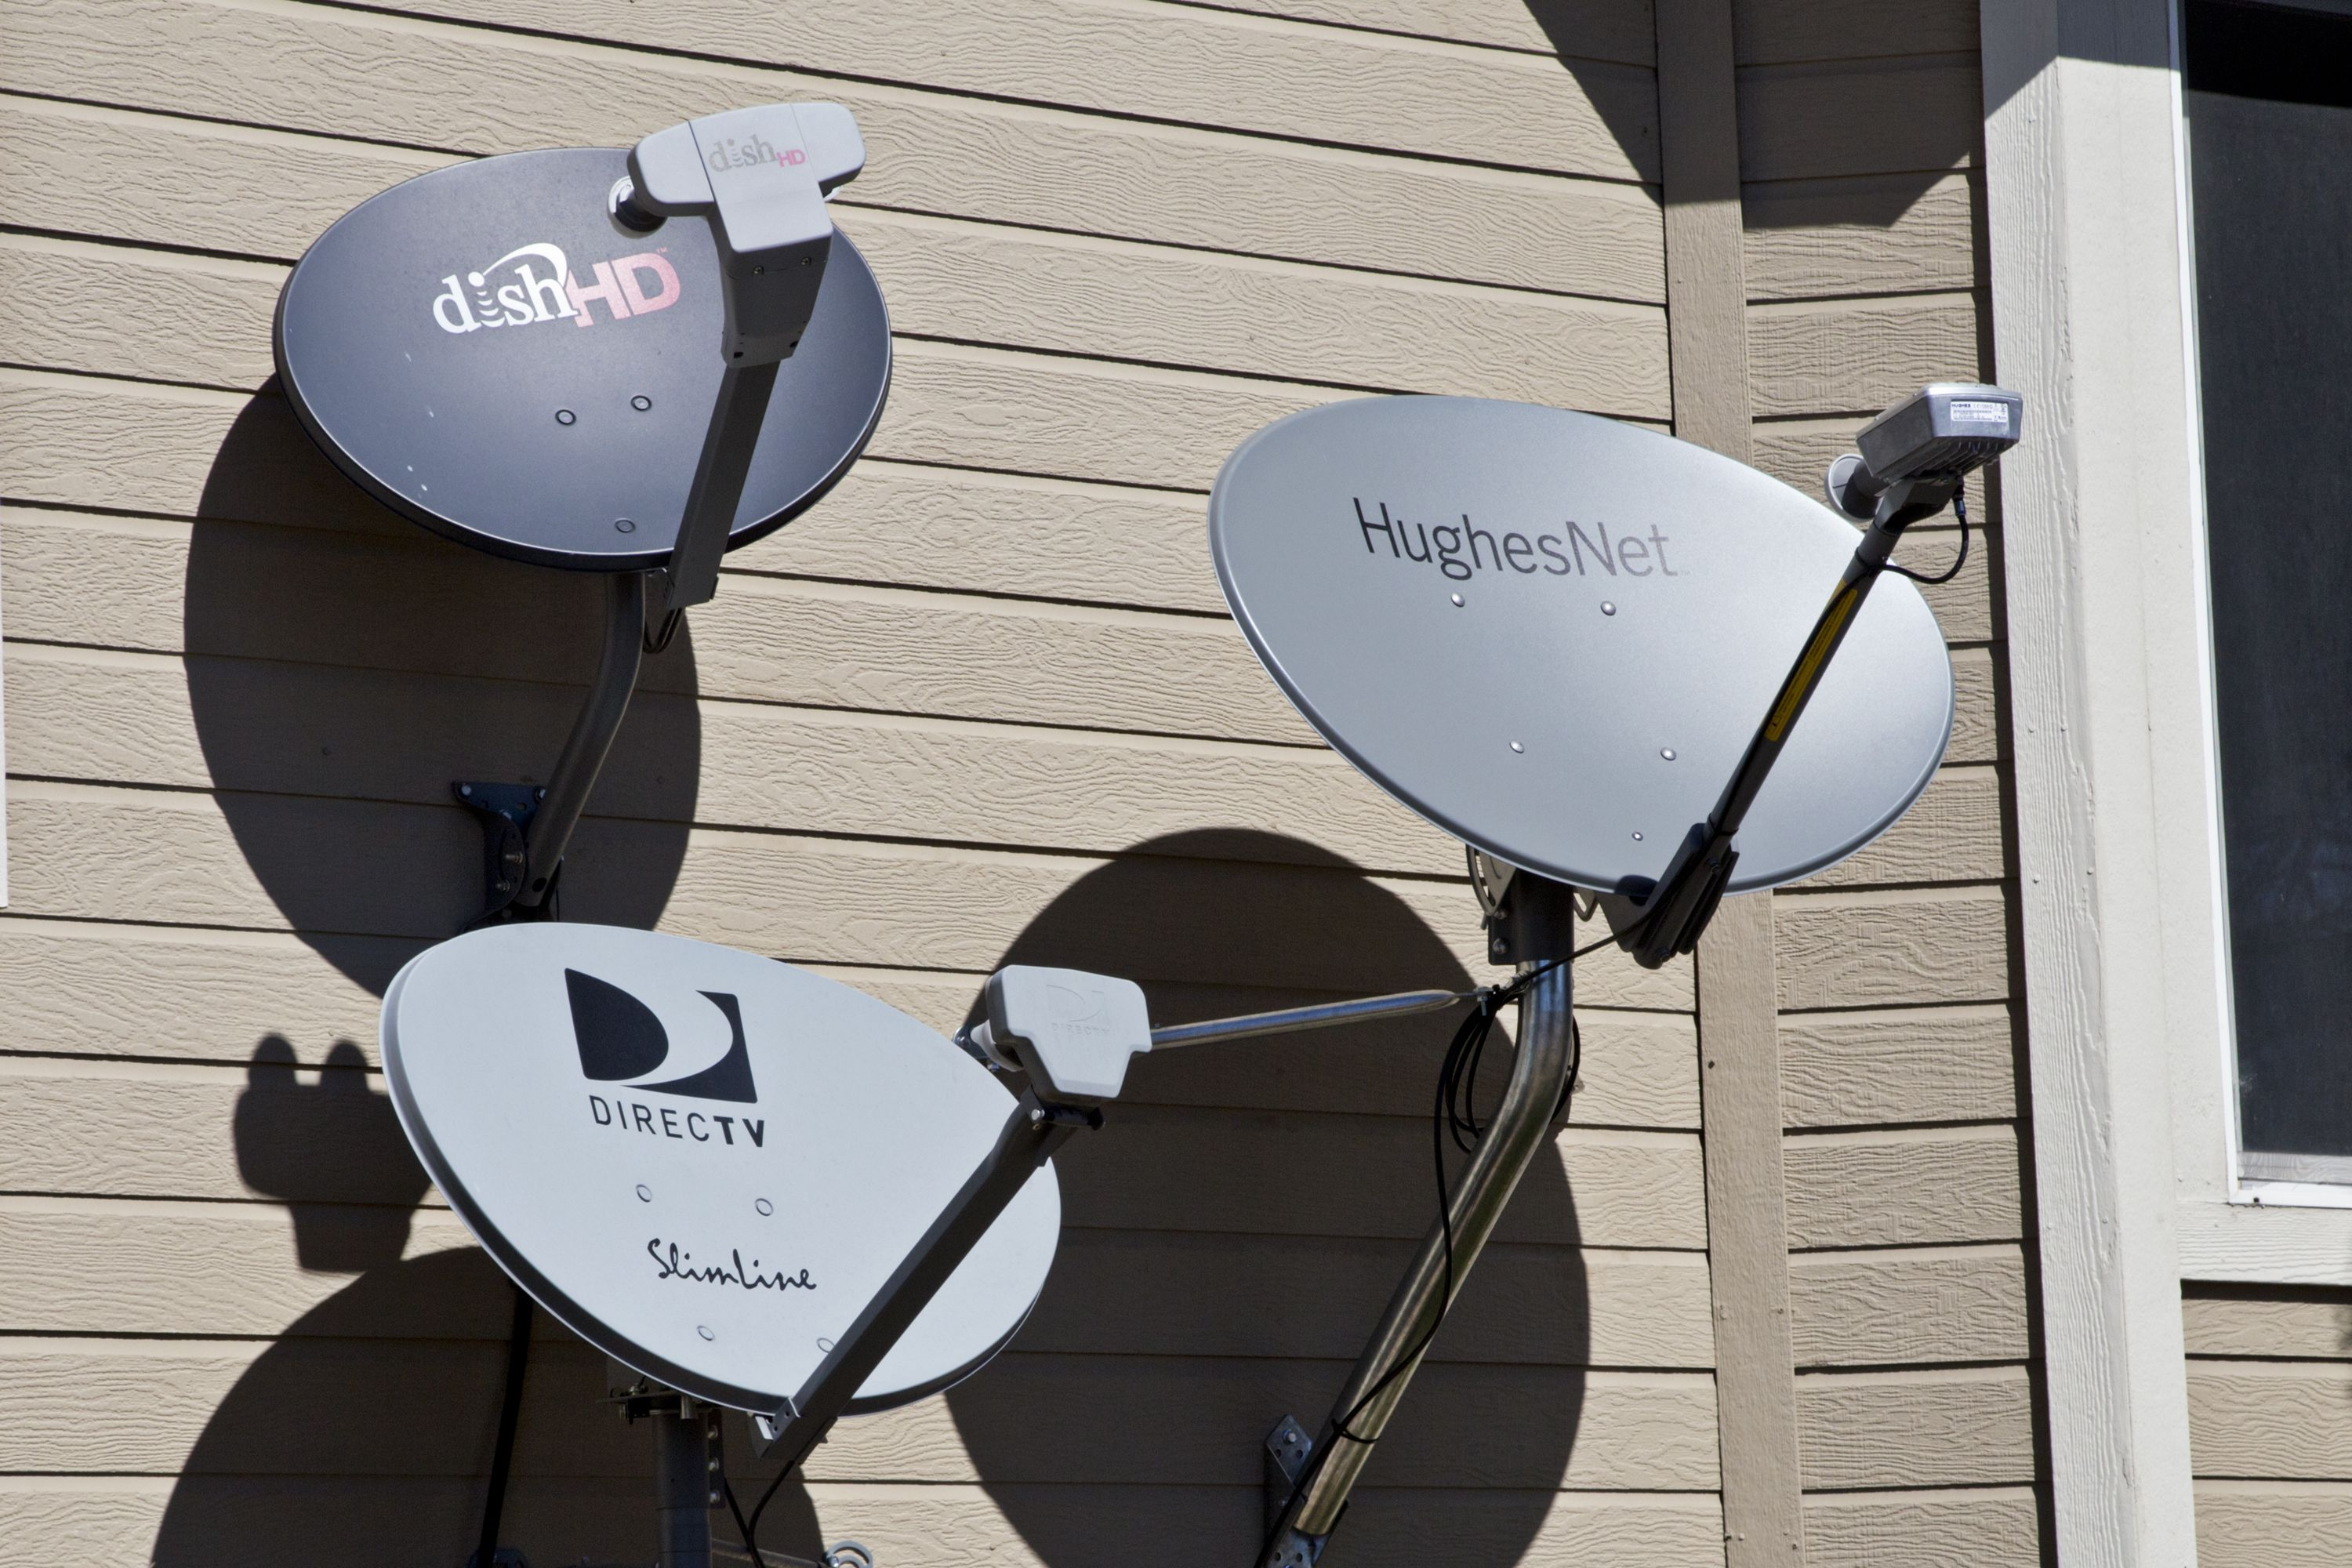 installing firmware on a new dish home media